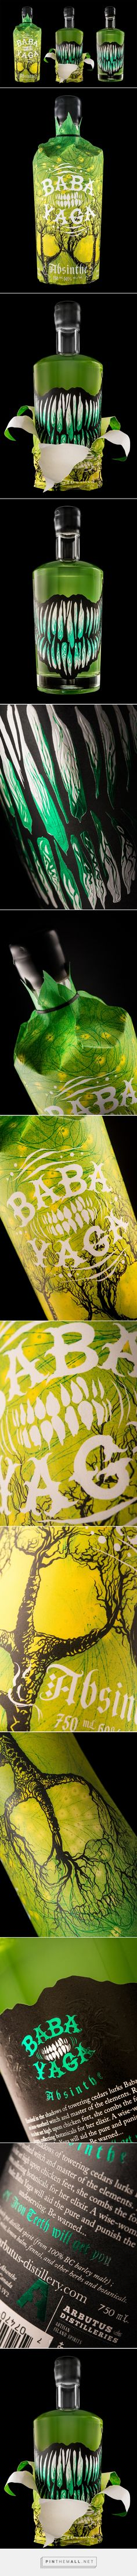 Baba Yaga Absinthe by Hired Guns Creative curated by Packaging Diva PD. Awesome packaging design to end your day created via http://hiredgunscreative.com/portfolio/baba-yaga/